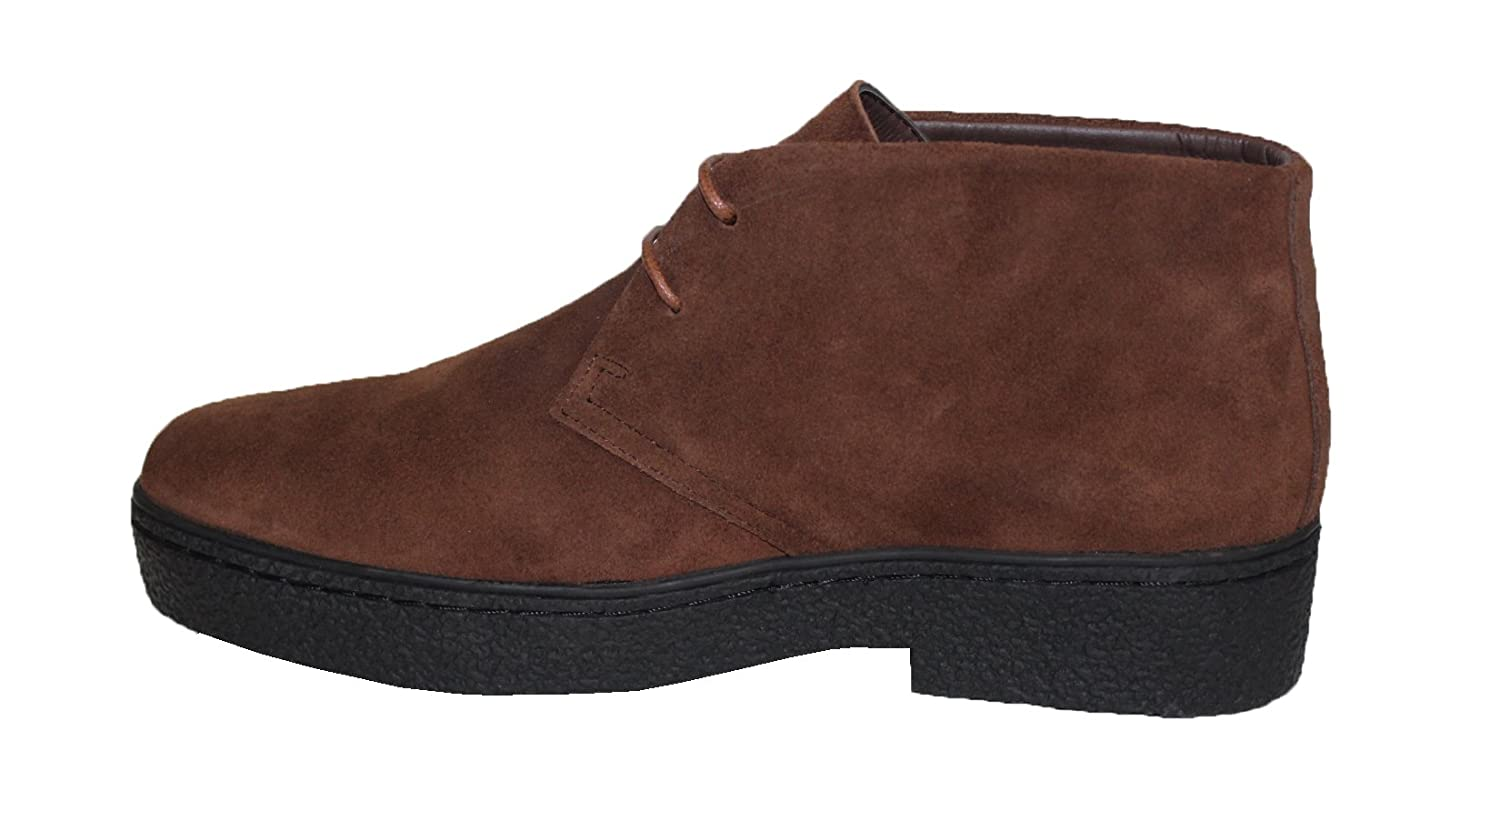 Playboy Style # 5611 Chukka High Top Mens Brown Suede Shoes Rocker British Style